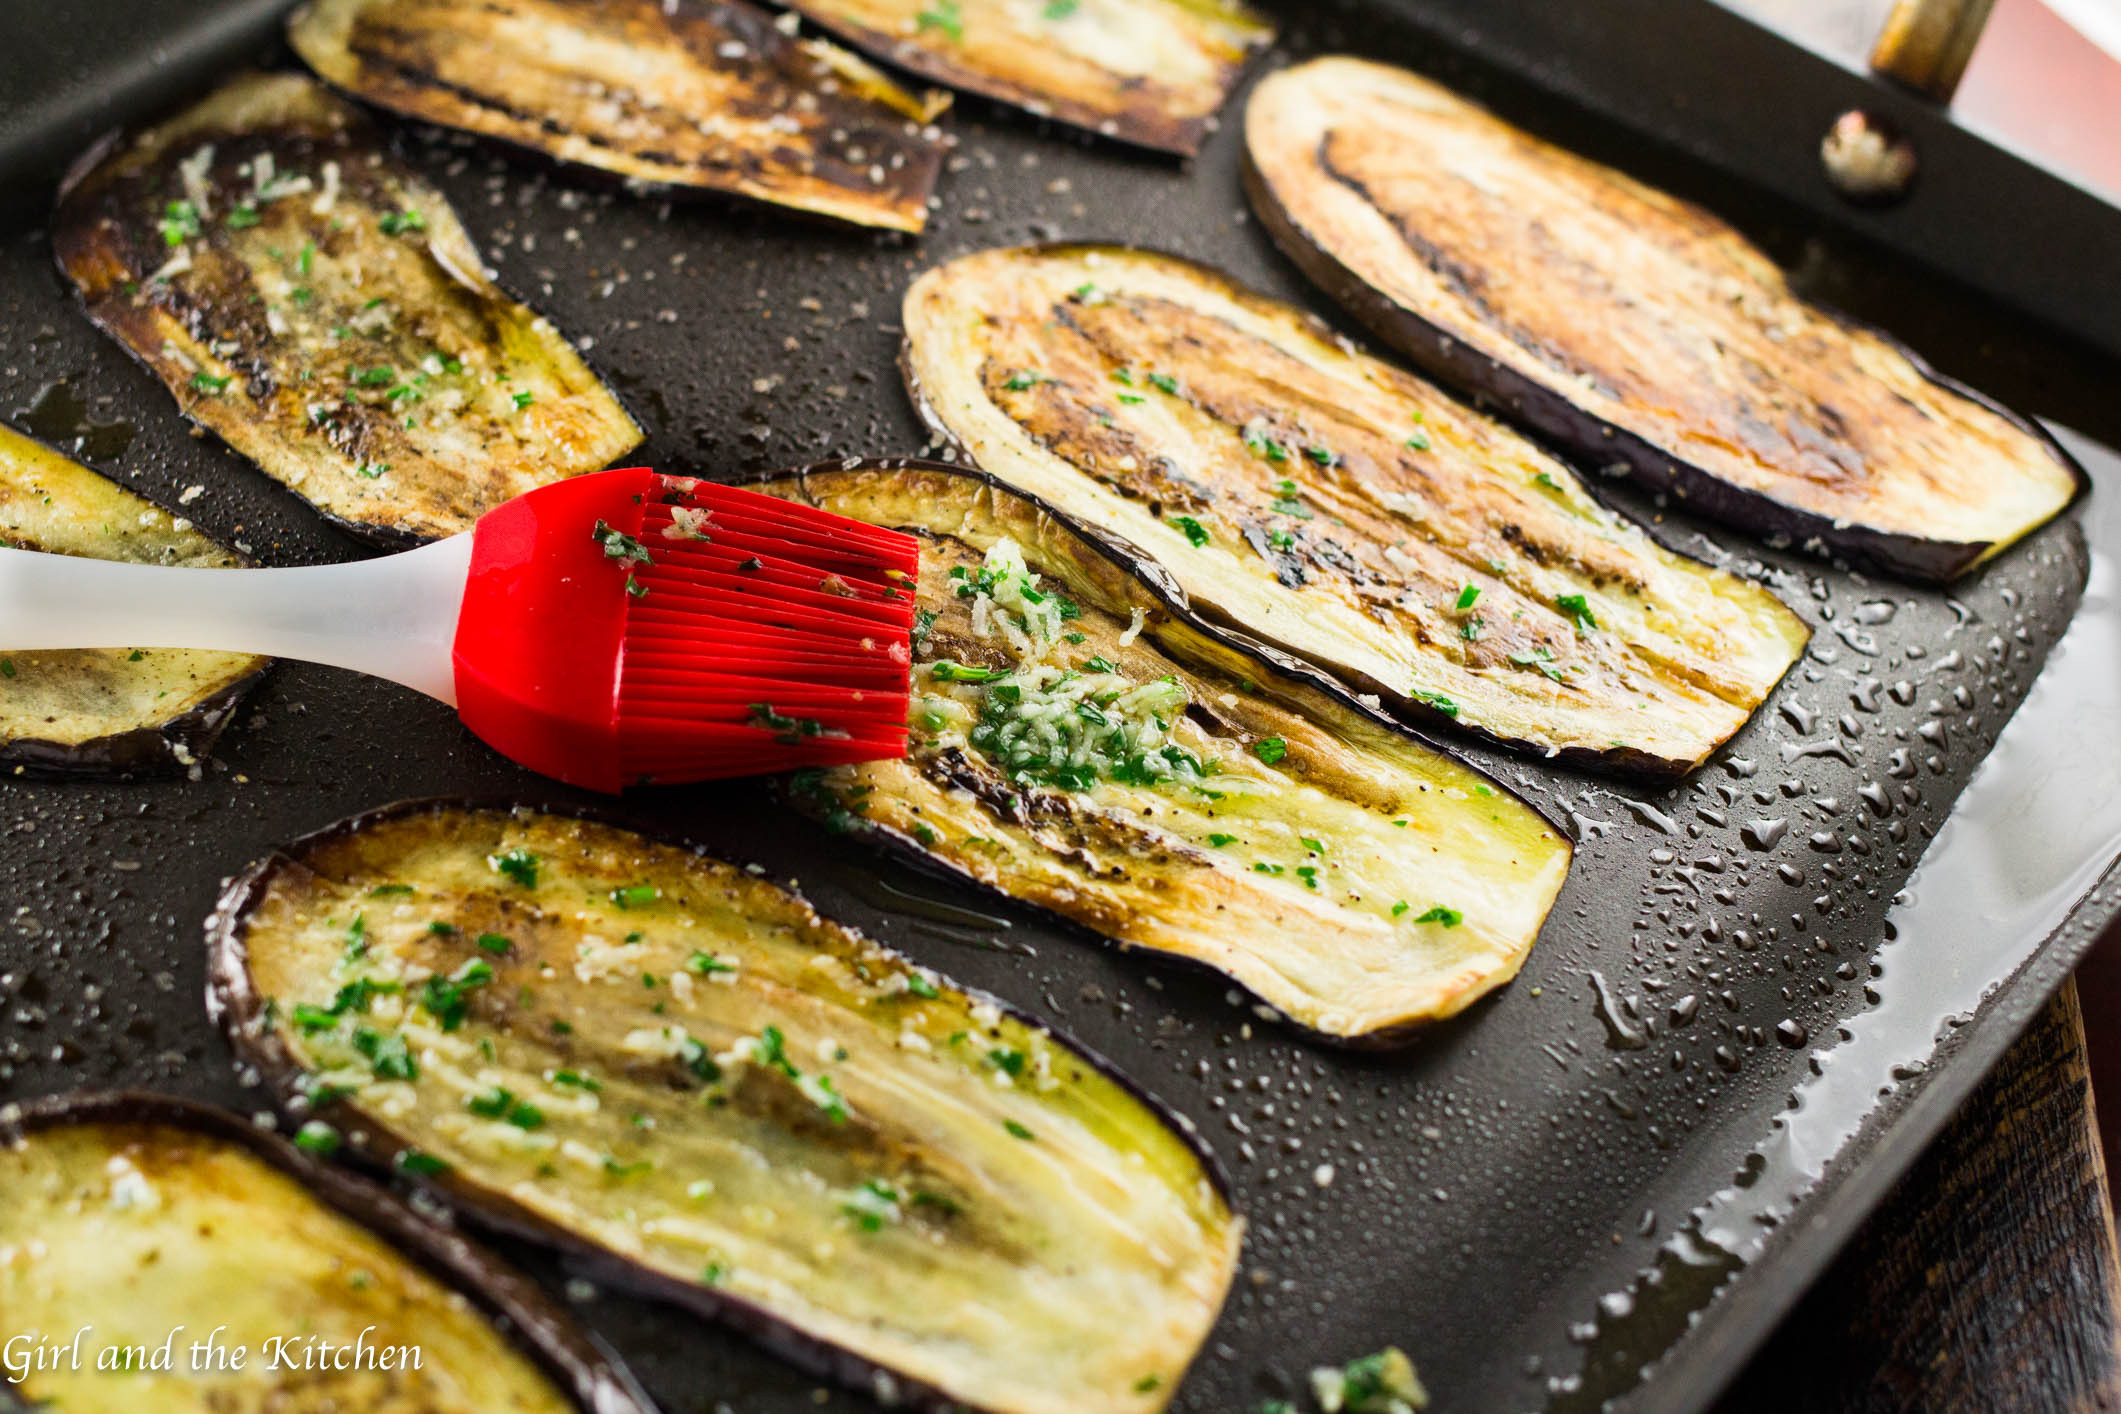 Eggplant Recipes Healthy  Healthy Pan Fried Baby Eggplant with Gremolata Girl and